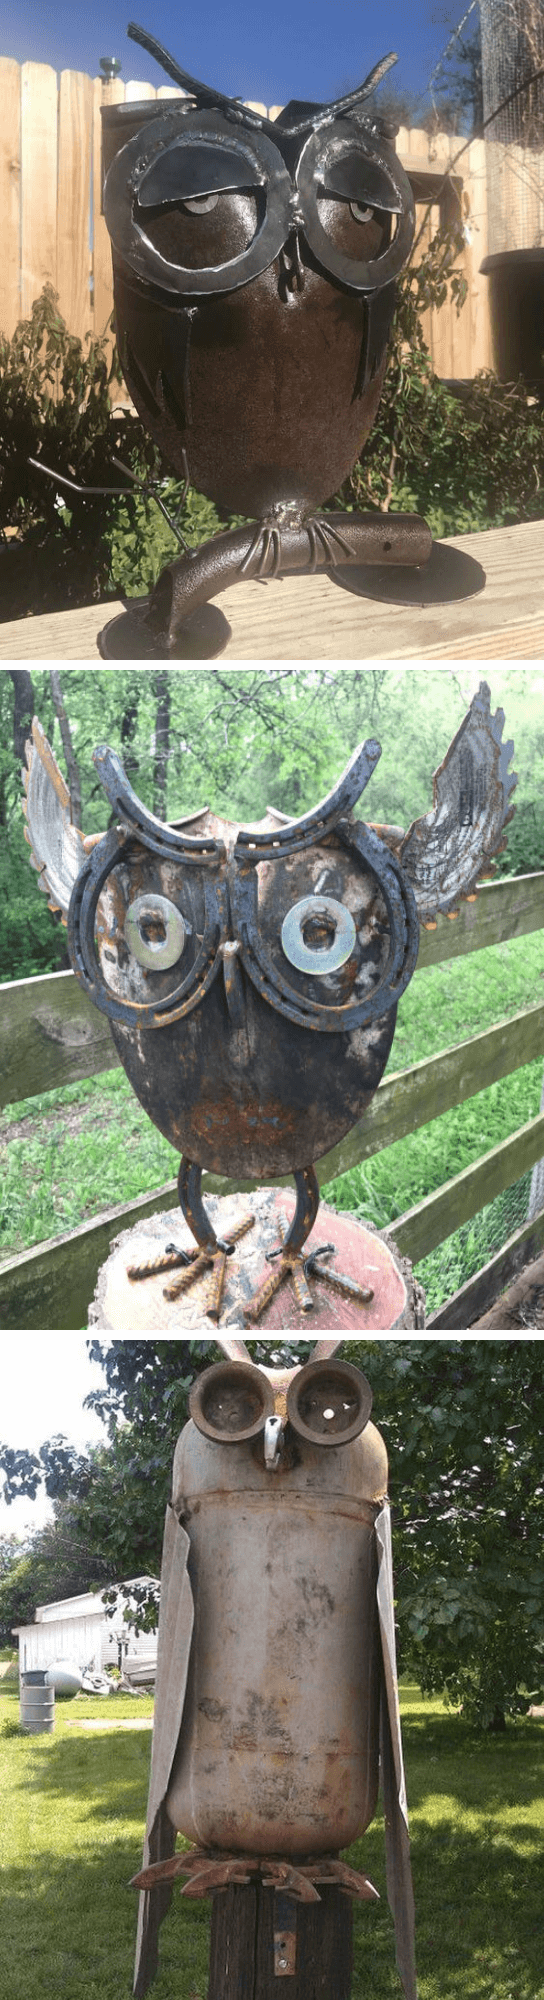 Rusty Metal garden DIY Ideas DIY Metal Owl